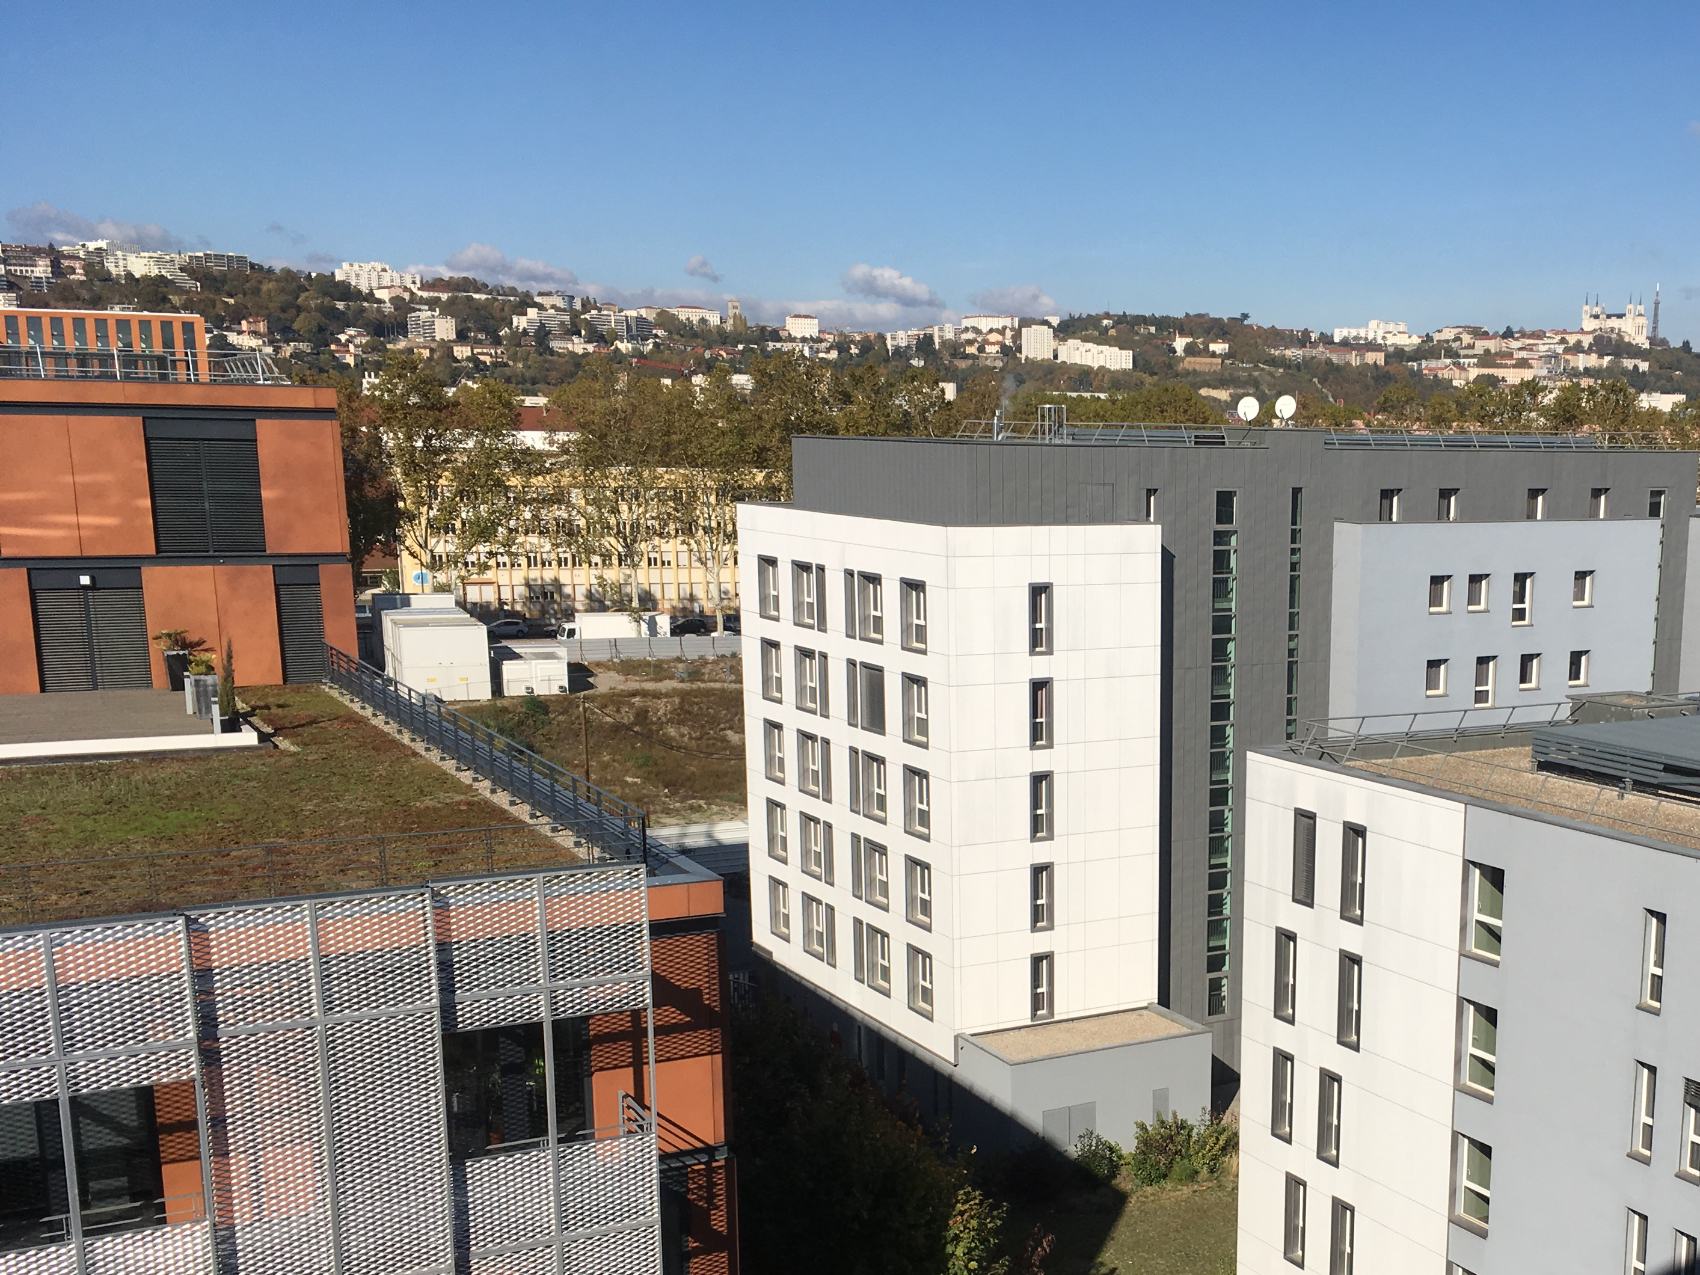 IMG-PRI-Girondines-appartements014-G.ATHANASE_10-2017-CC